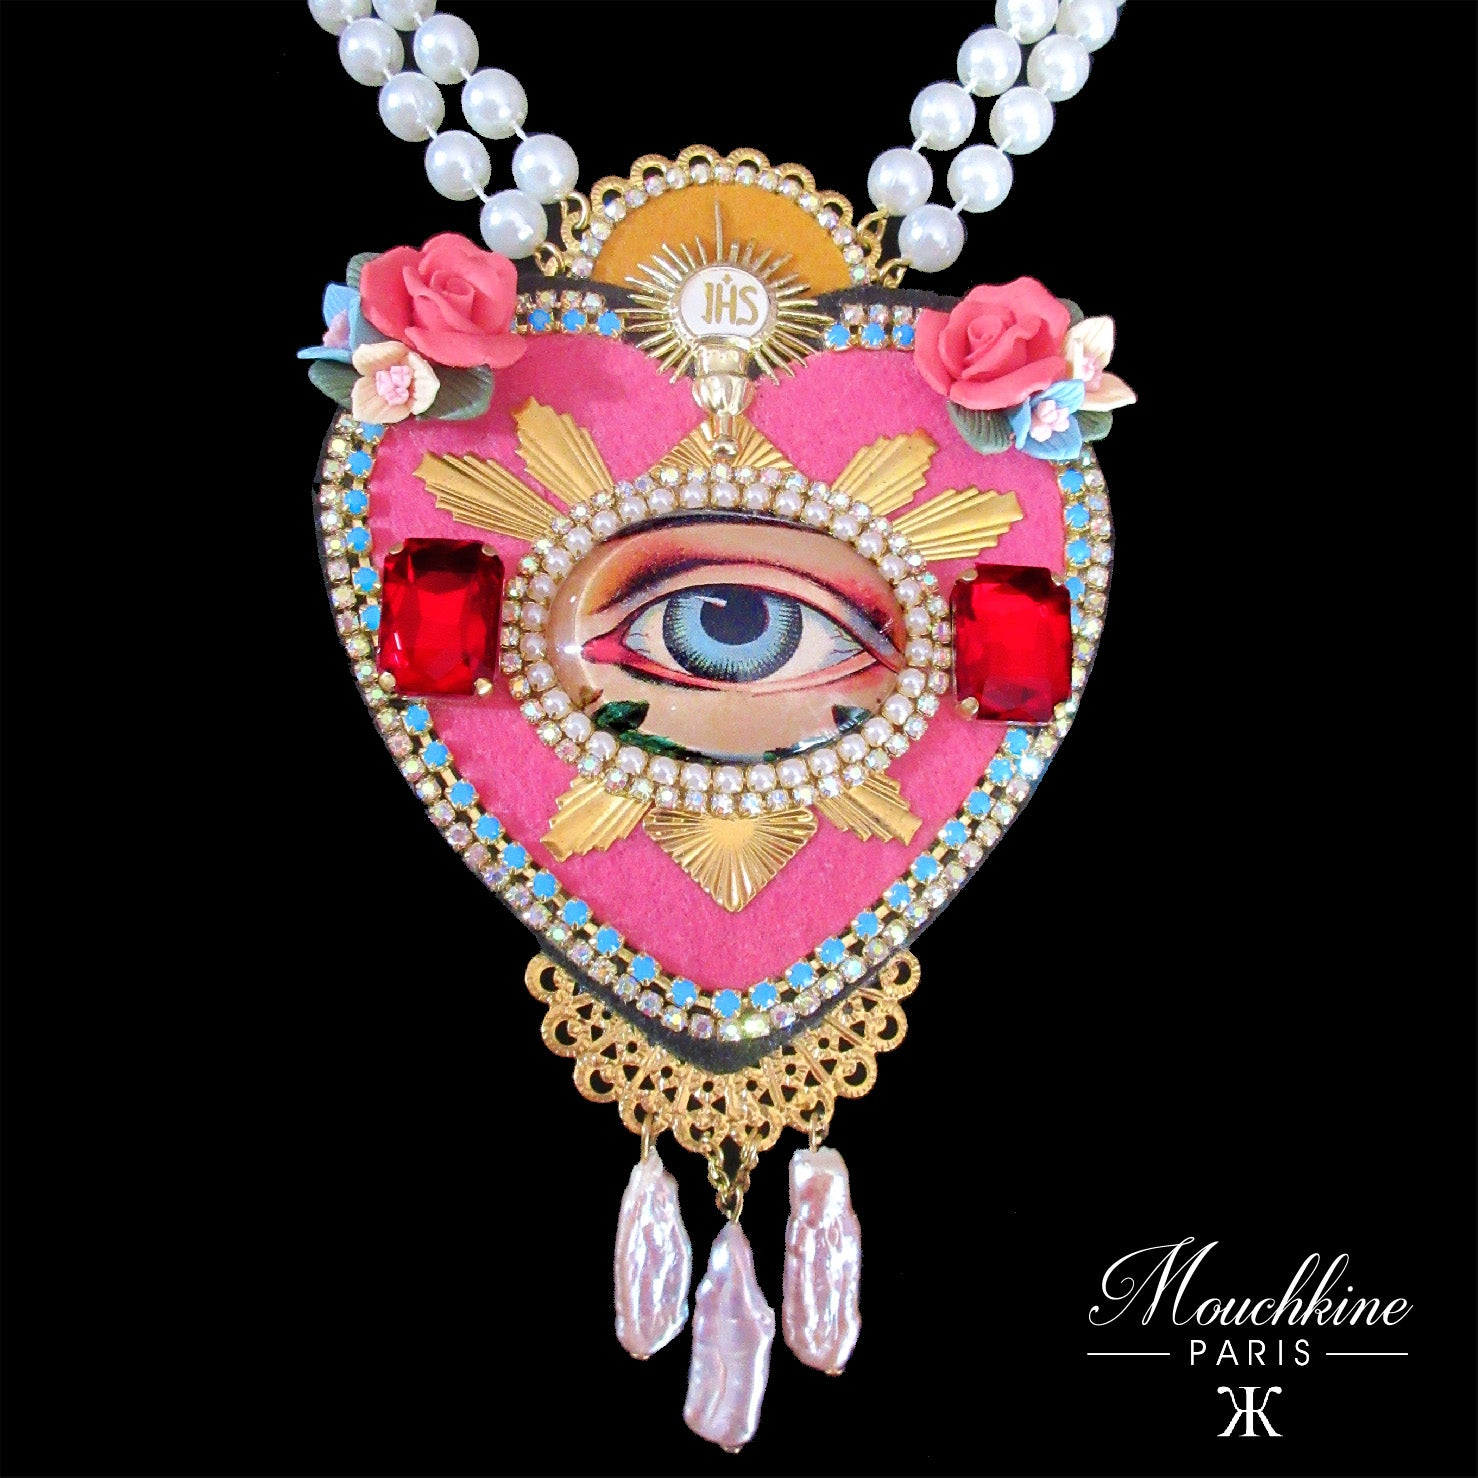 mouchkine jewelry couture pink heart with a center vintage eye necklace